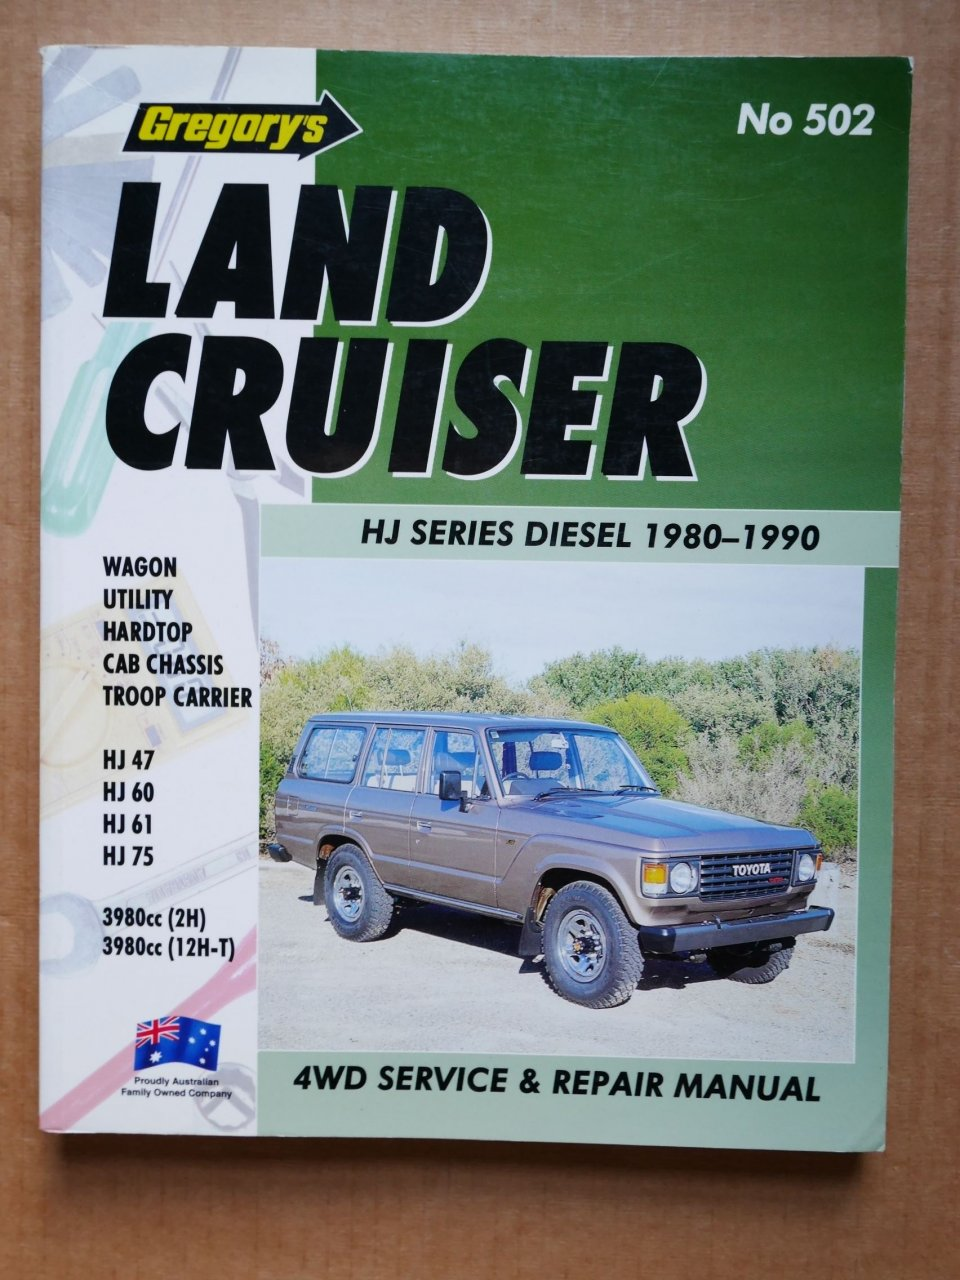 for sale land cruiser manuals diesel gregory s max ellery s rh forum ih8mud com 1990 FJ62 Diesle 88 Landcruiser FJ62 V8